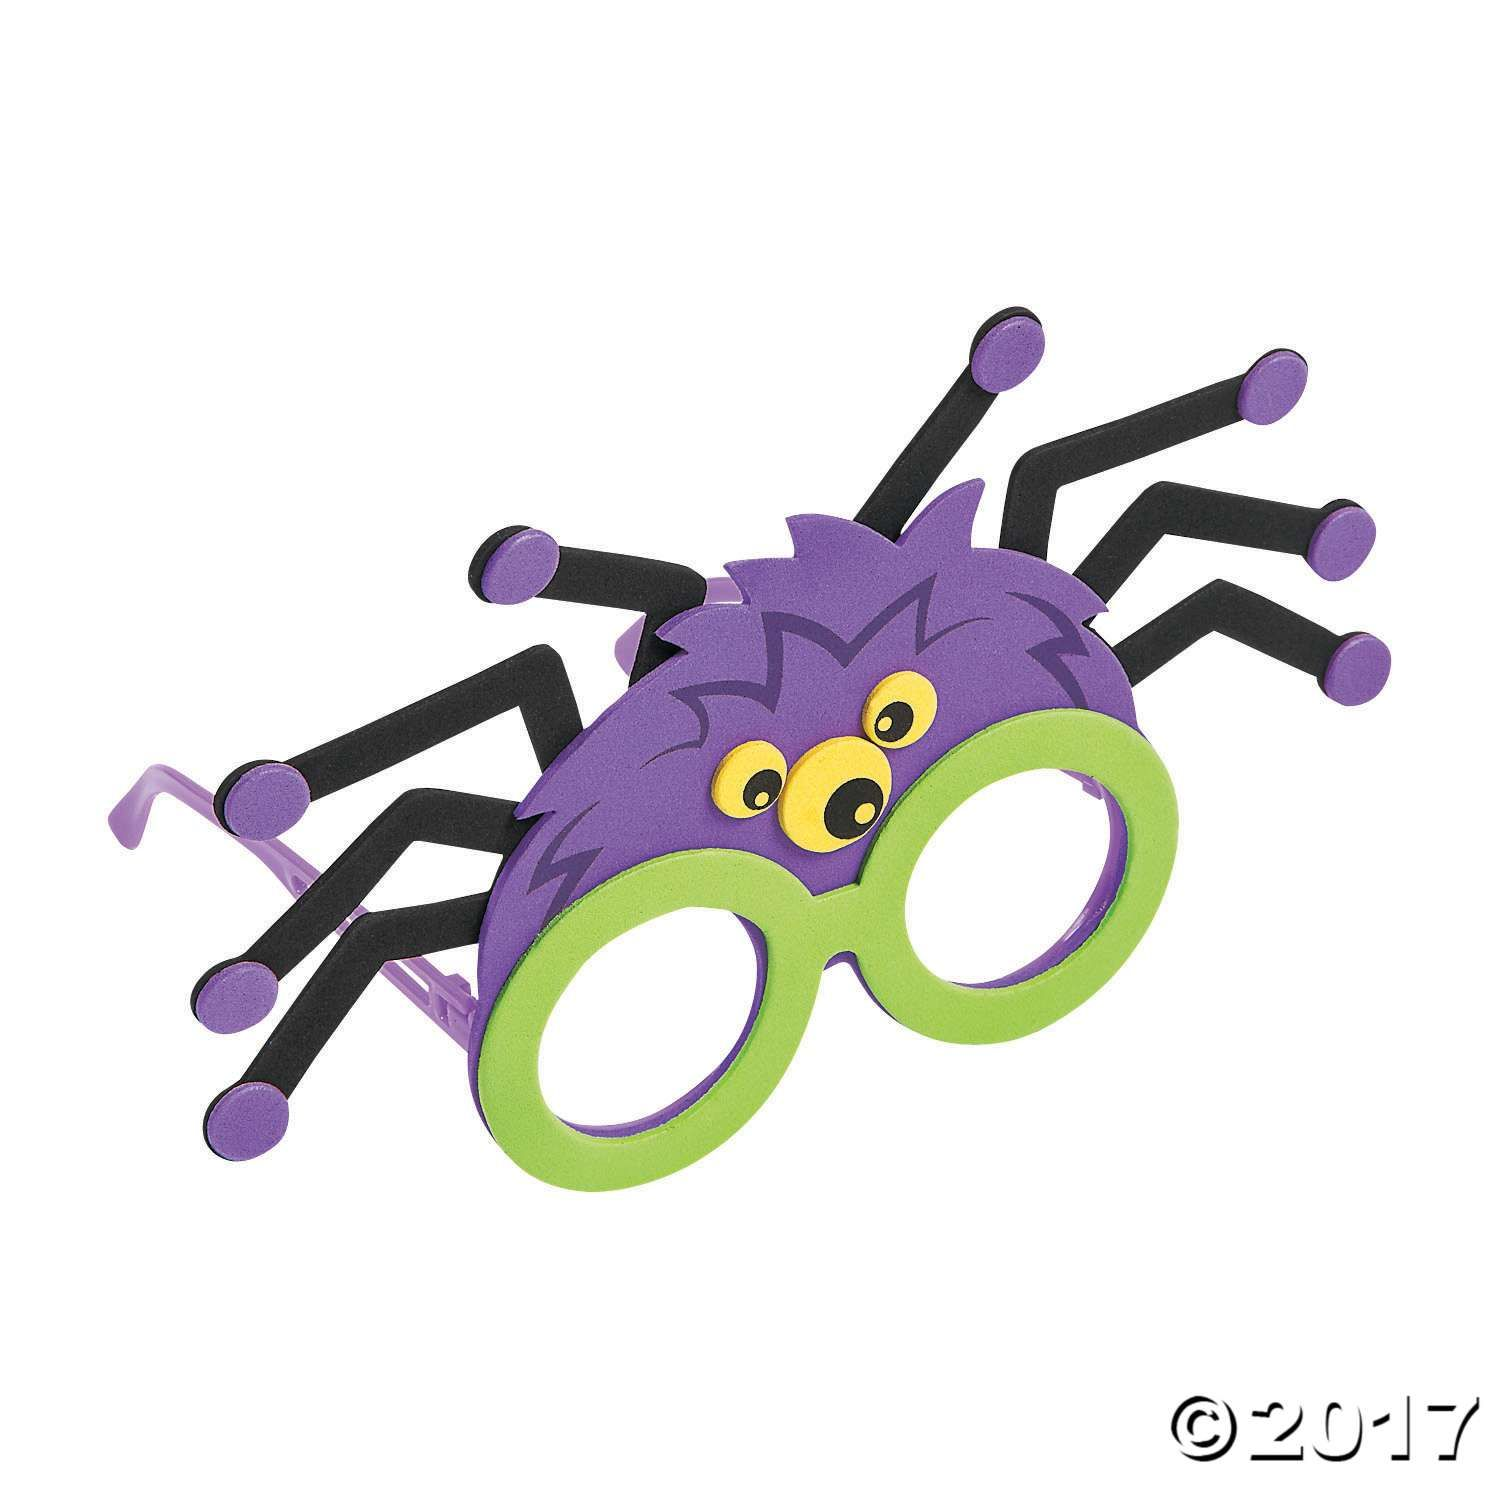 Foam /& Pipecleaner Spider Kids Halloween Craft Kit Makes 15